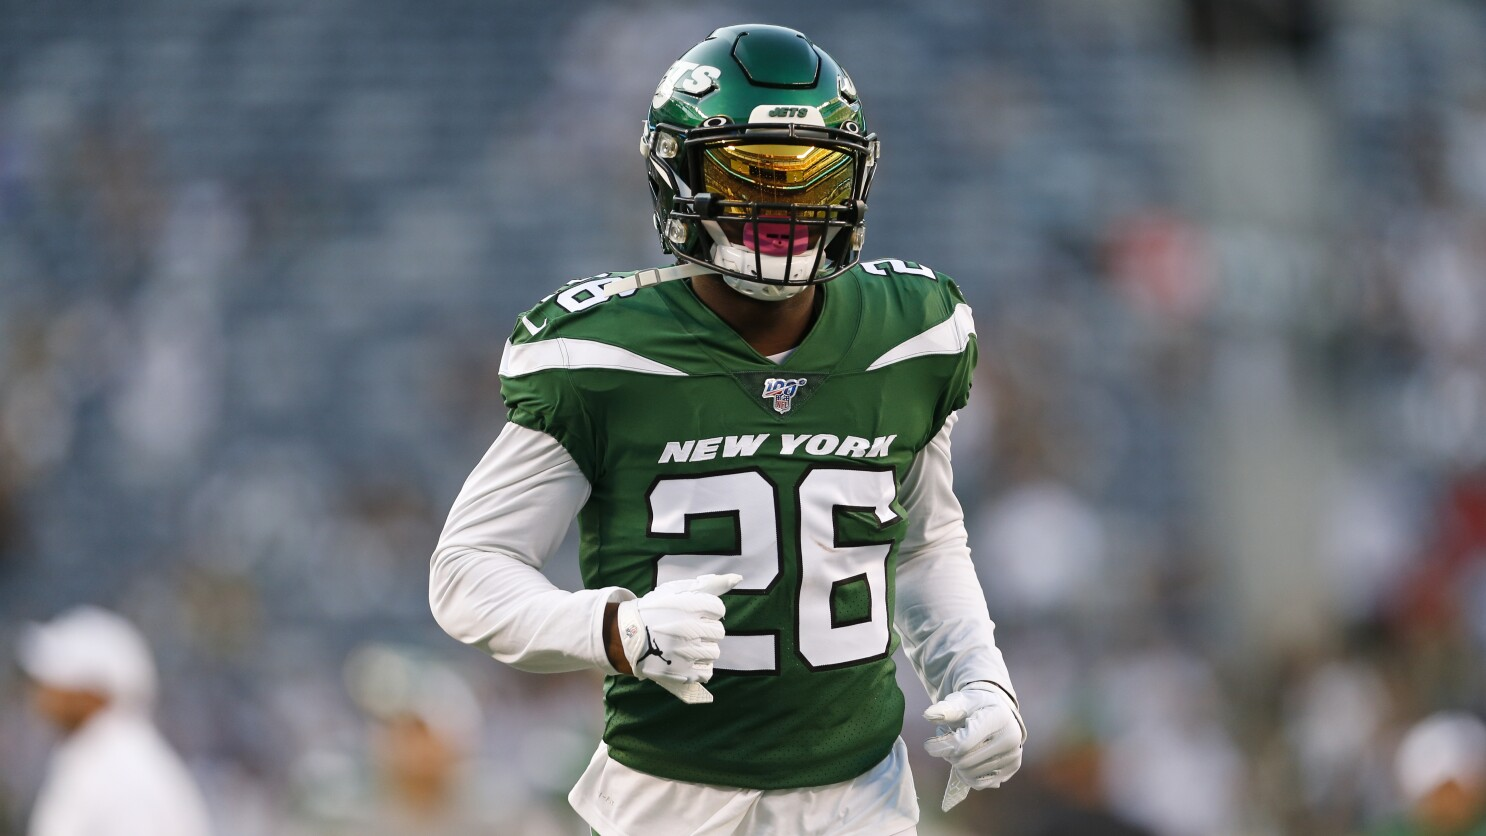 AFC East preview: What impact will Le'Veon Bell have on Jets? - Los Angeles  Times